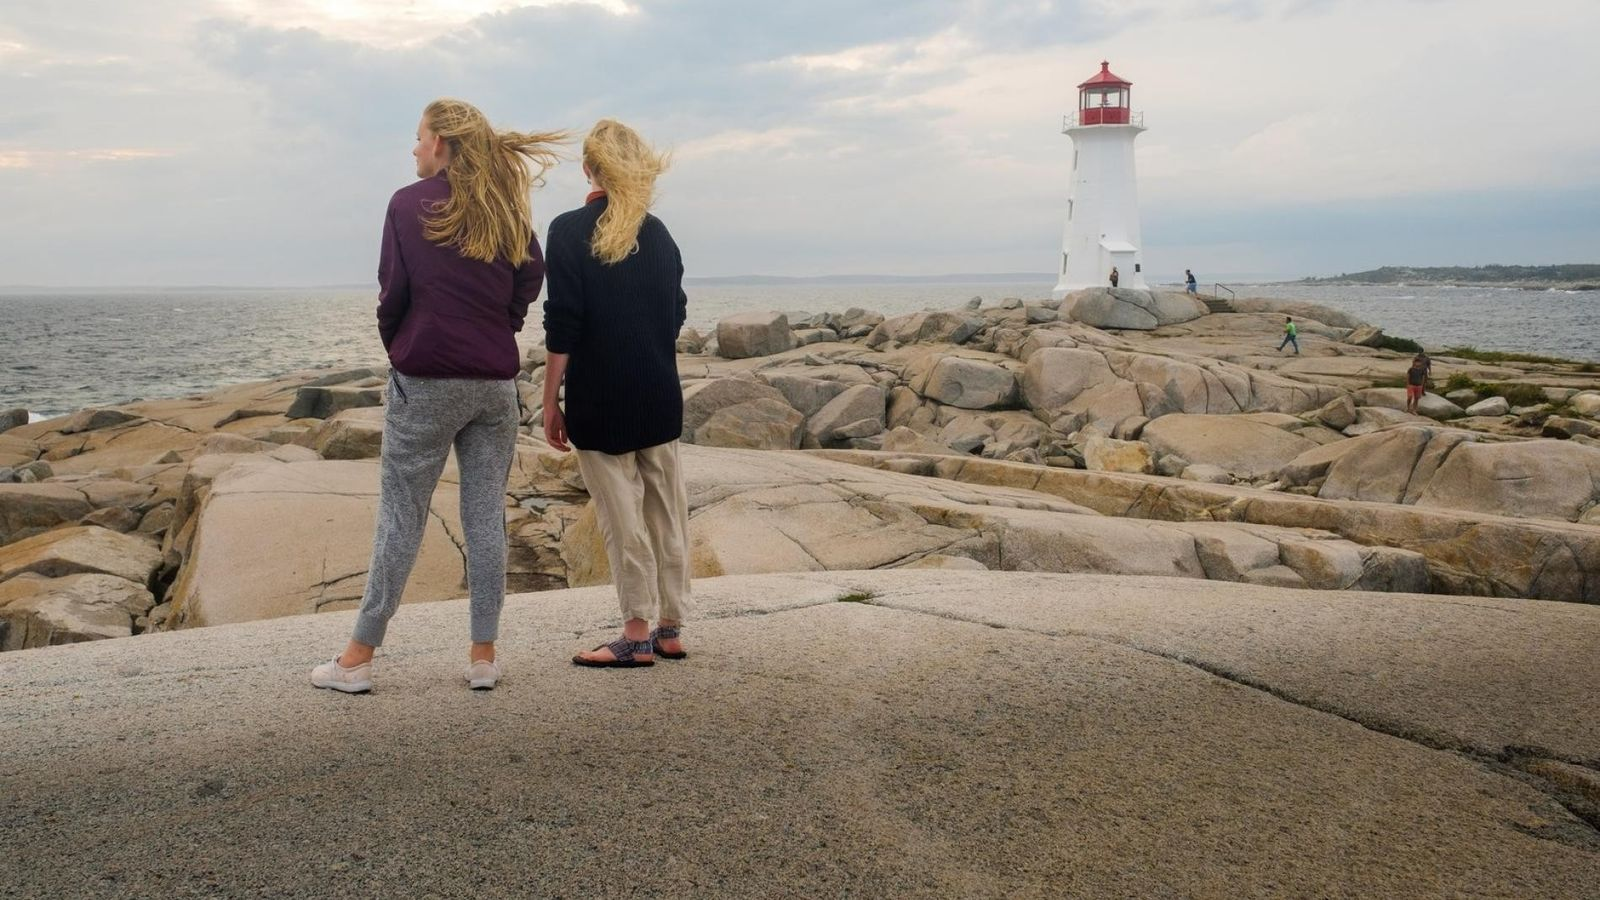 Peggy's Point Lighthouse is one of the most recognizable structures on Nova Scotia's Lighthouse Route.